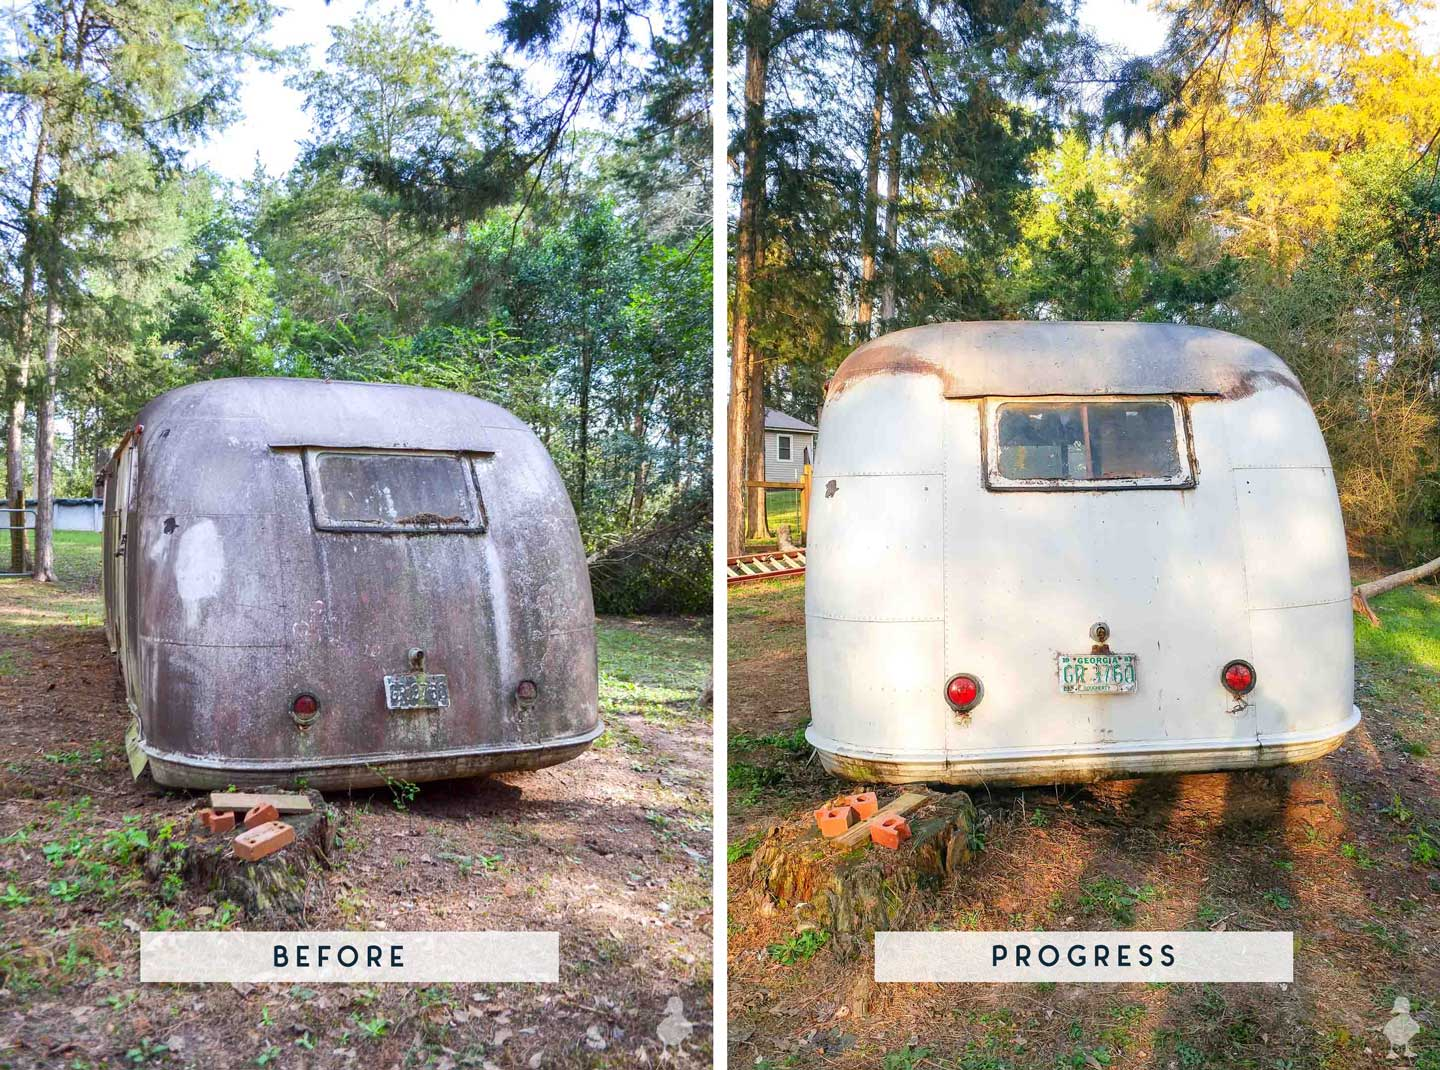 before and after of rear of vintage camper after first wash